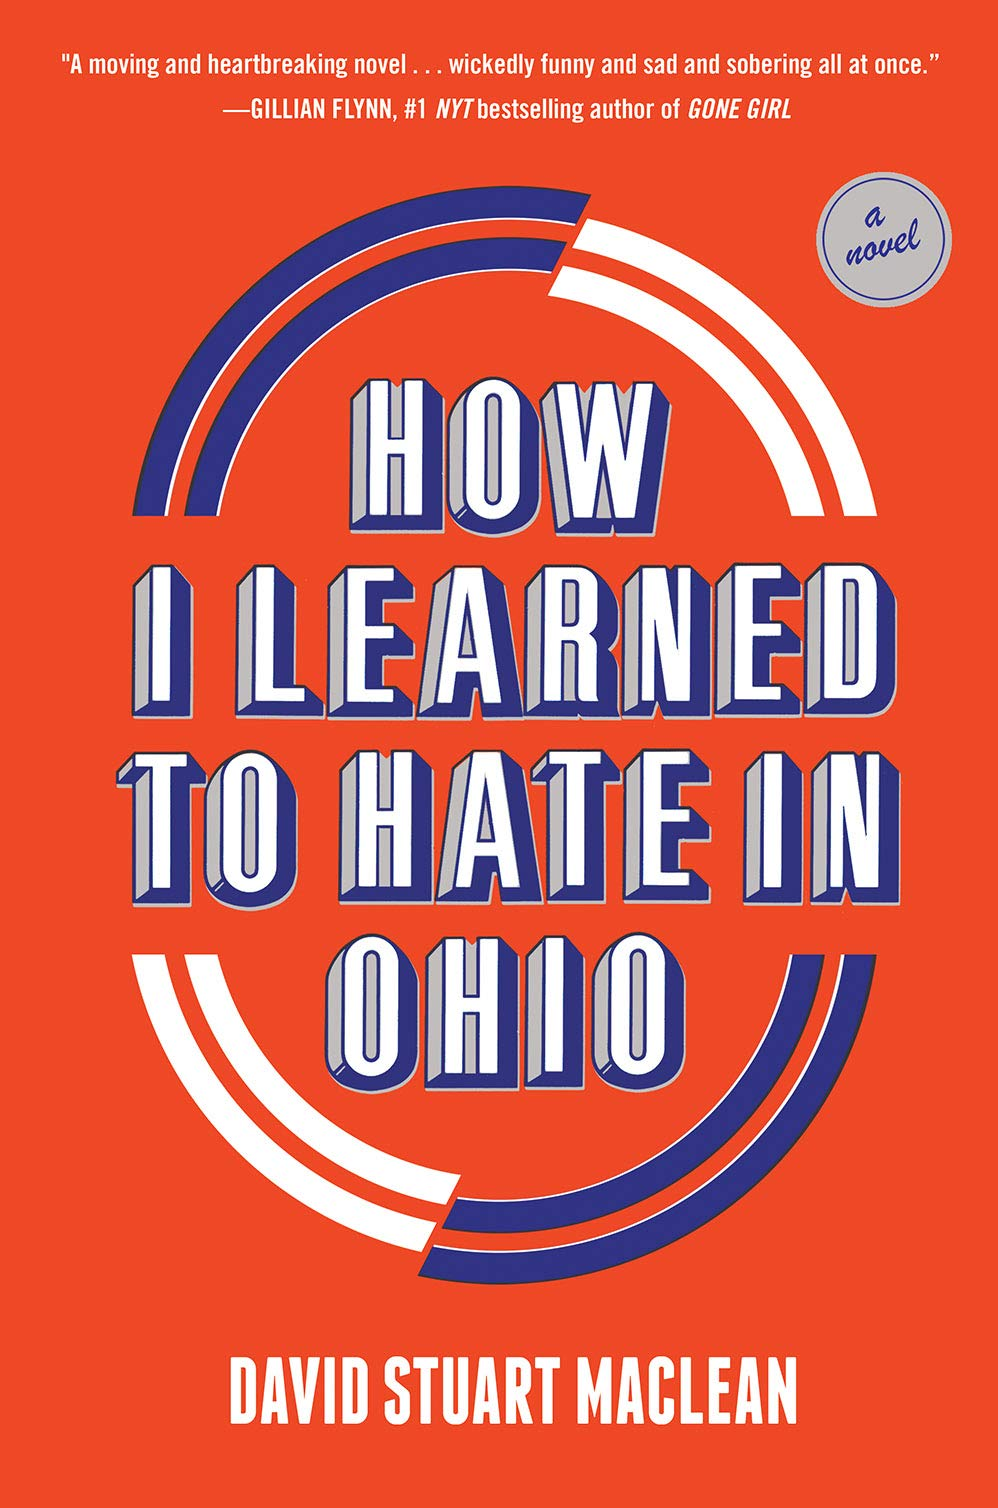 [PDF] [EPUB] How I Learned to Hate in Ohio Download by David Stuart MacLean